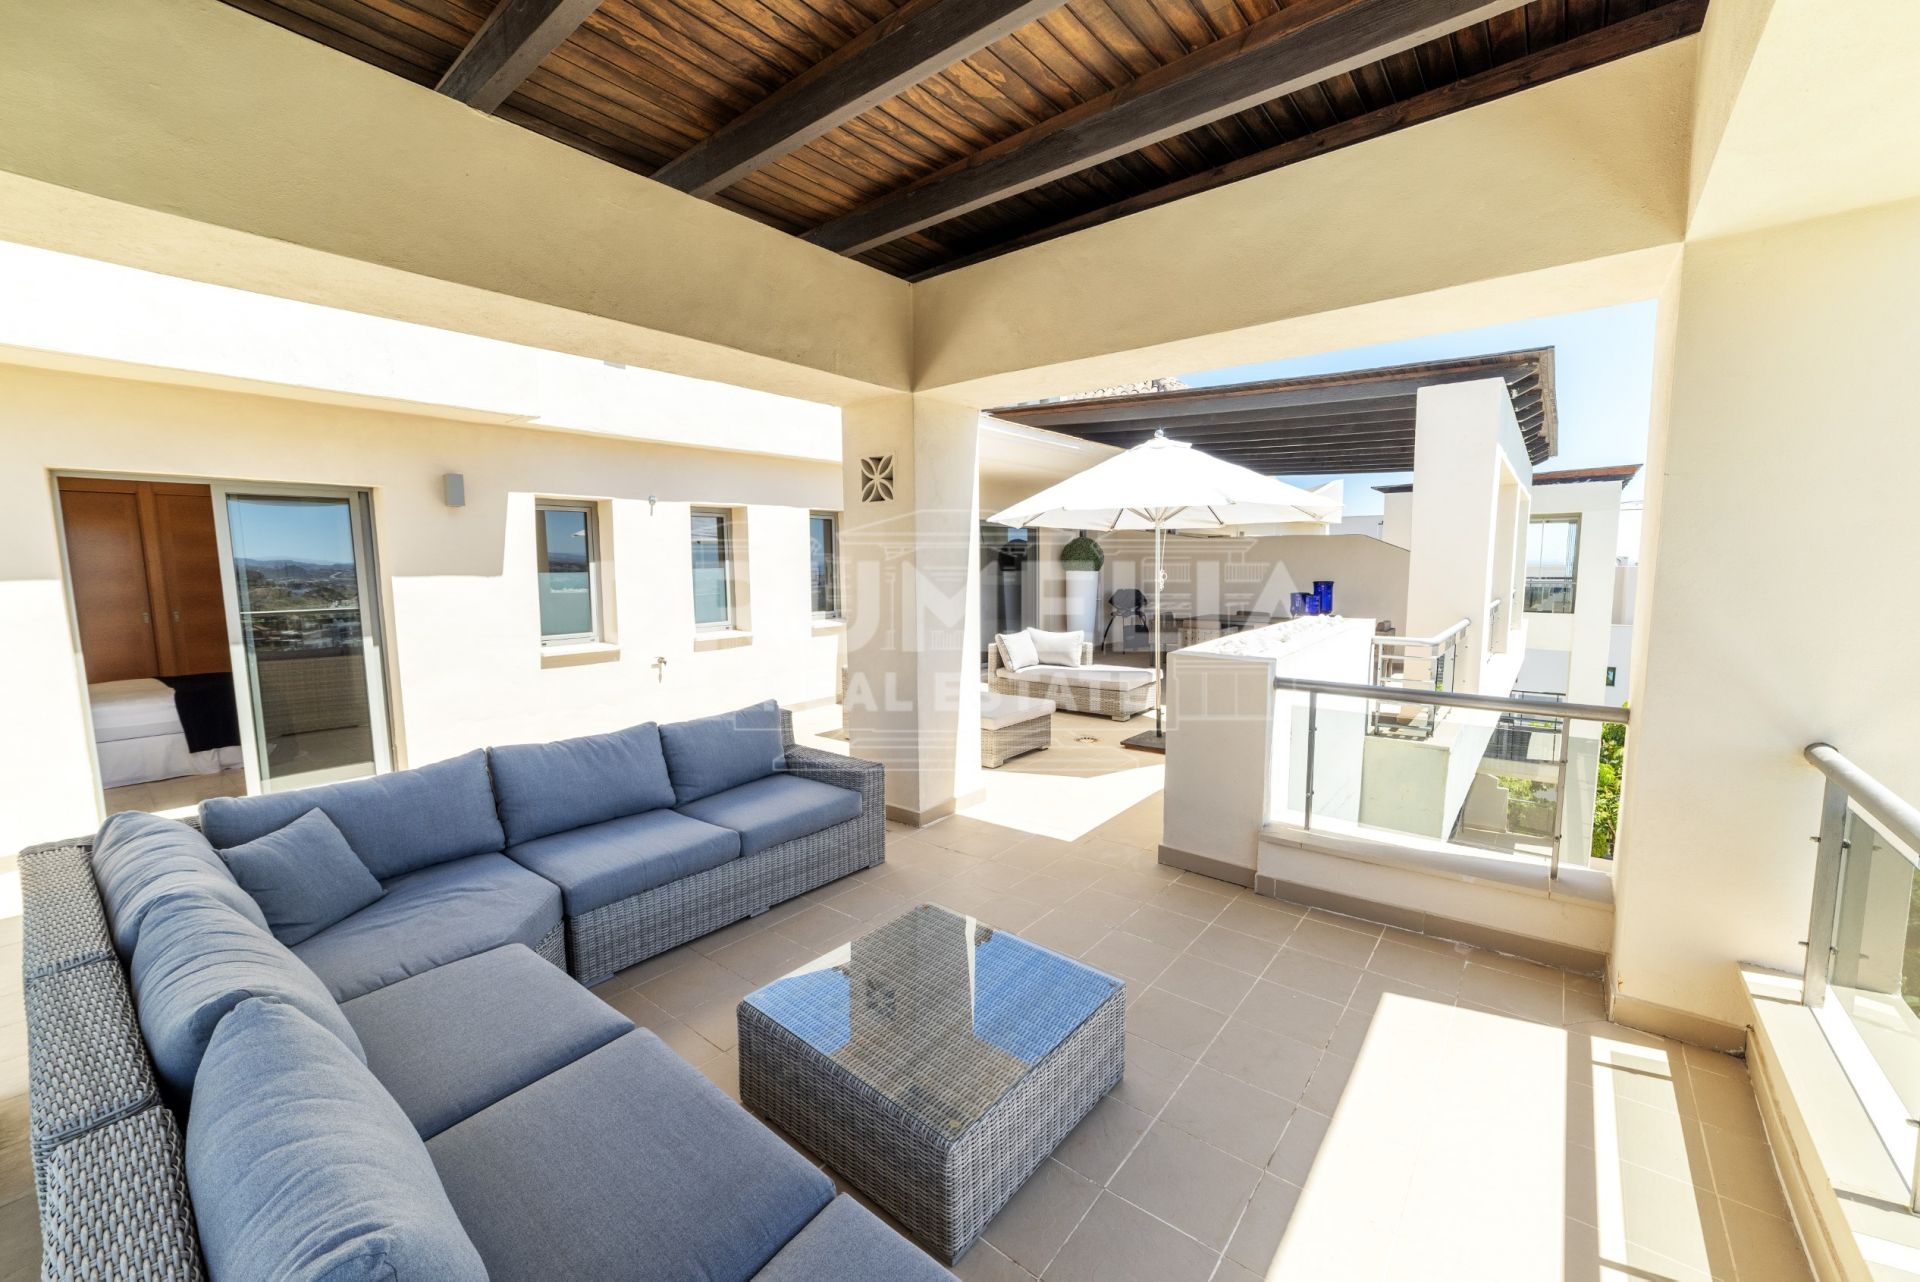 Benahavis, Splendid Frontline Golf Modern Luxury Penthouse with Stunning Panoramic Views, Acosta los Flamingos, Benahavis